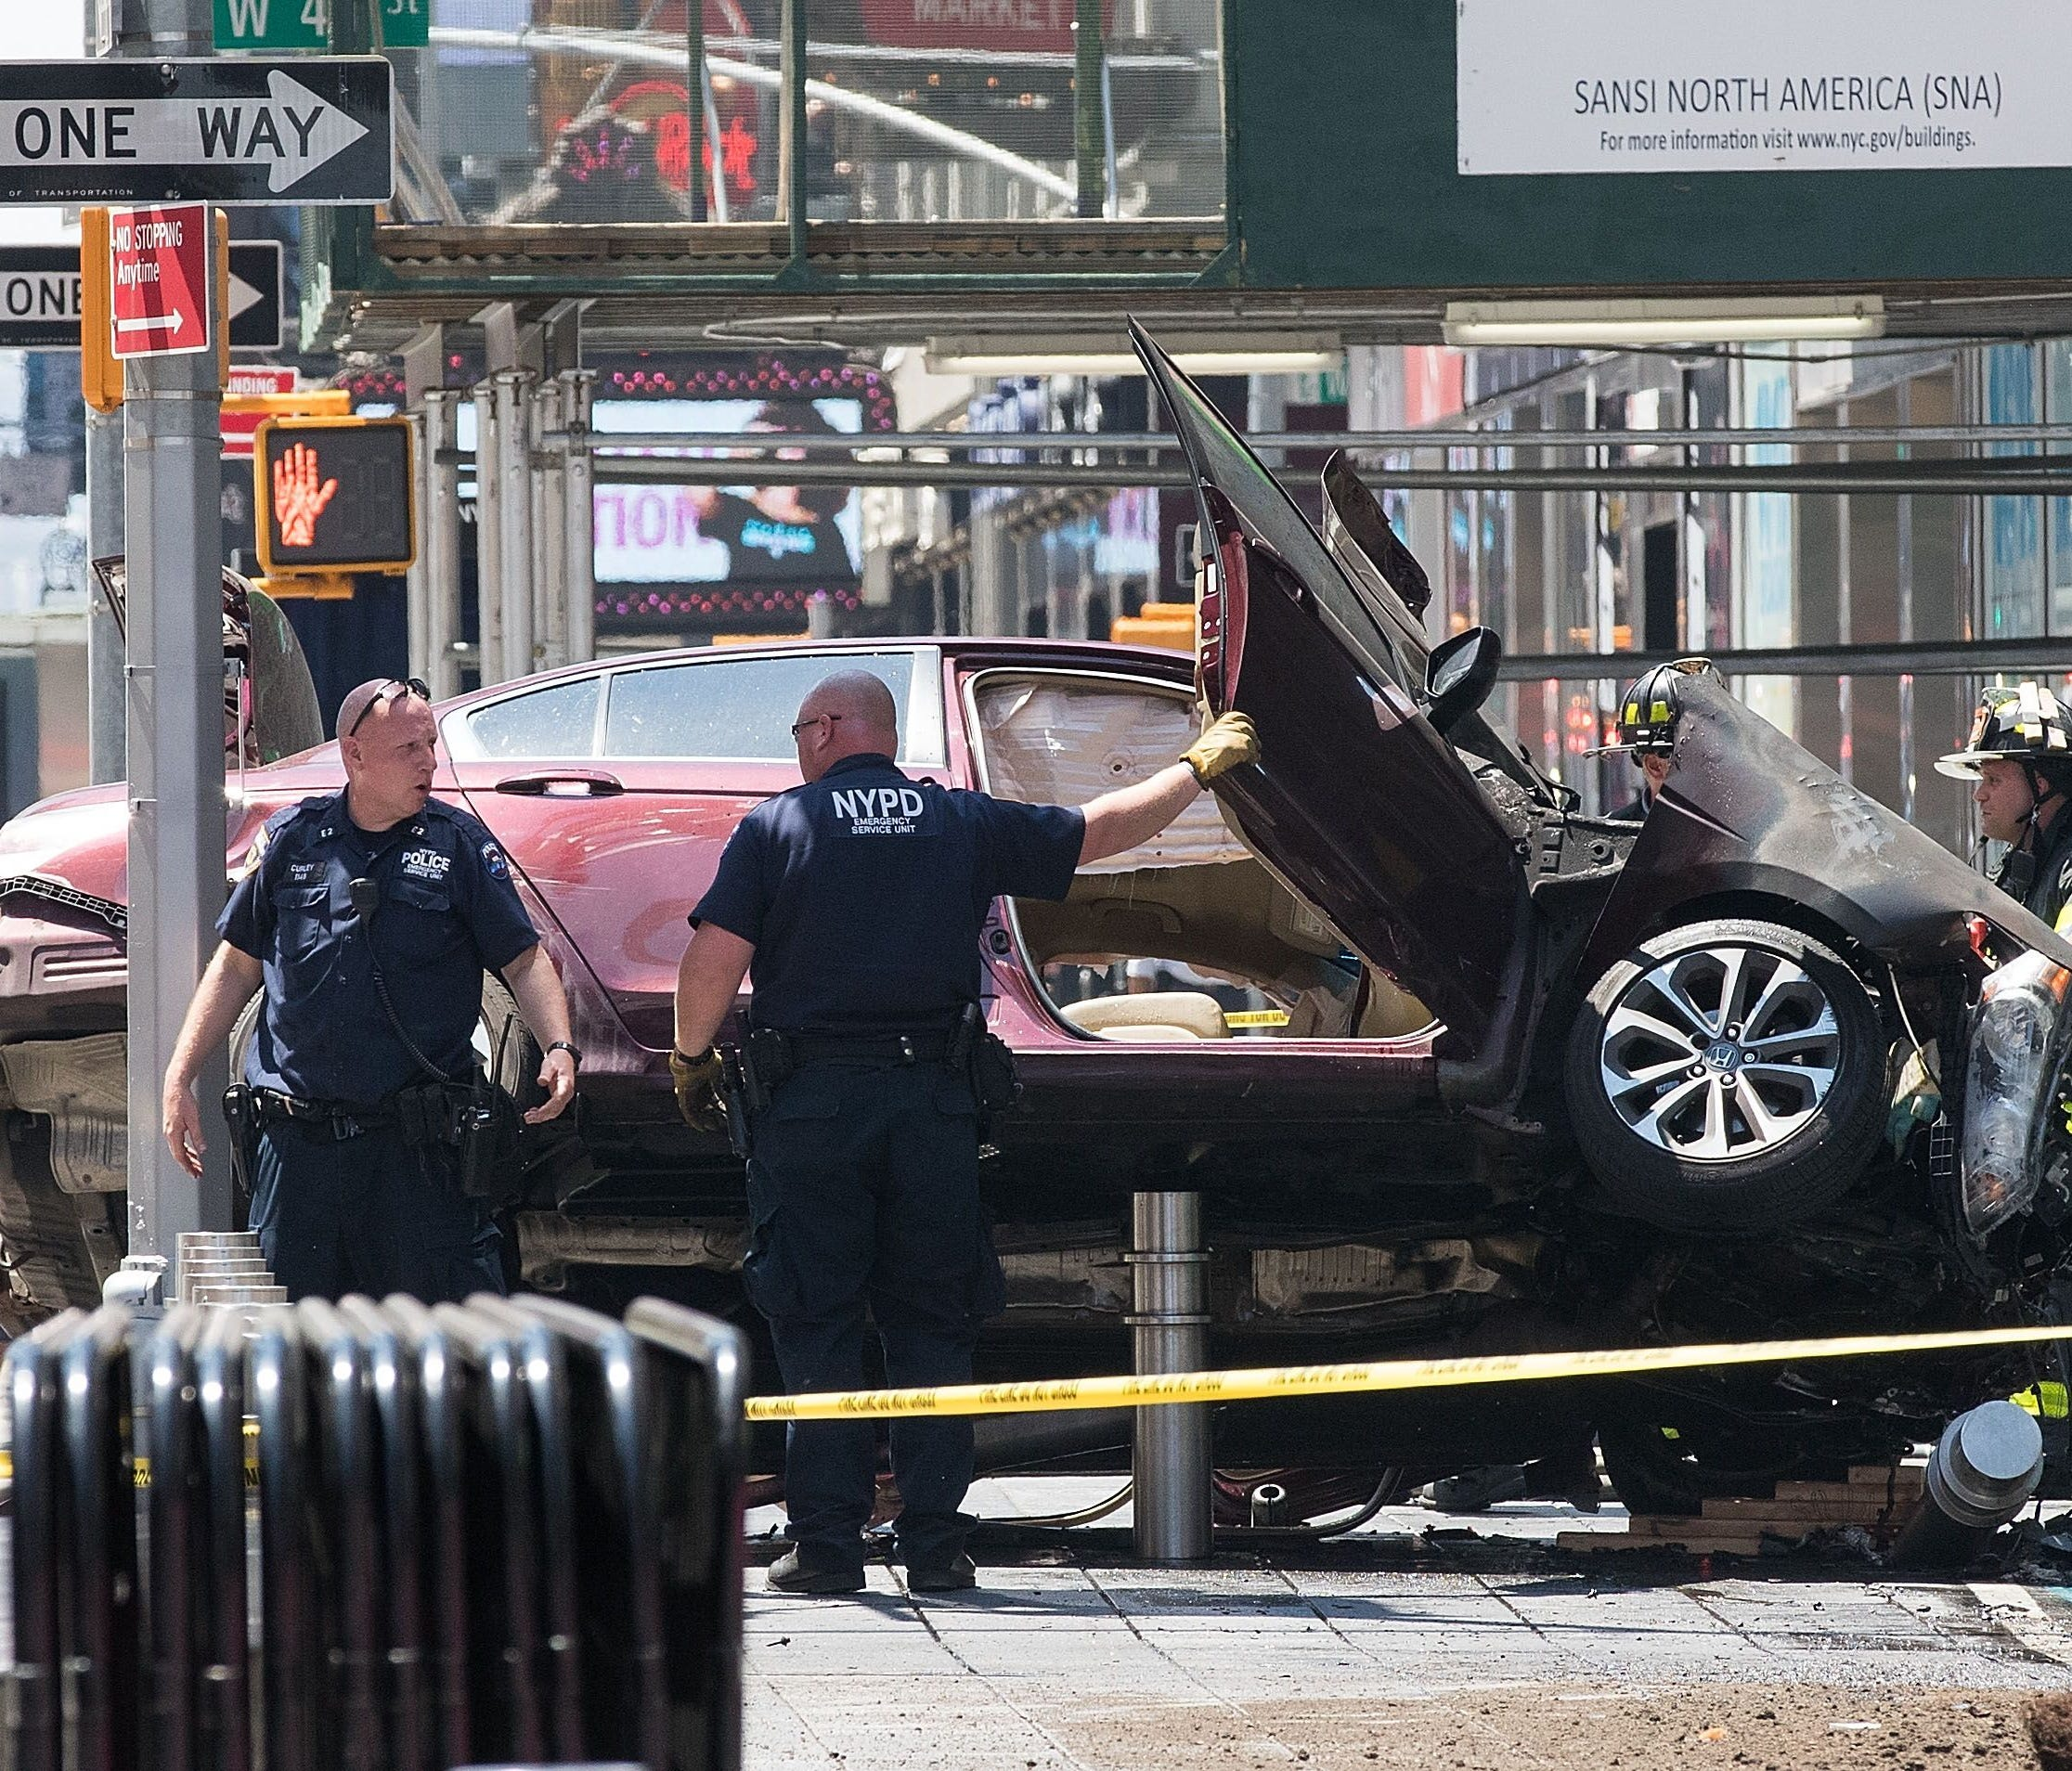 A wrecked car sits in the intersection of 45th and Broadway in Times Square, May 18, 2017 in New York. According to reports there were multiple injuries and one fatality after the car plowed into a crowd of people.